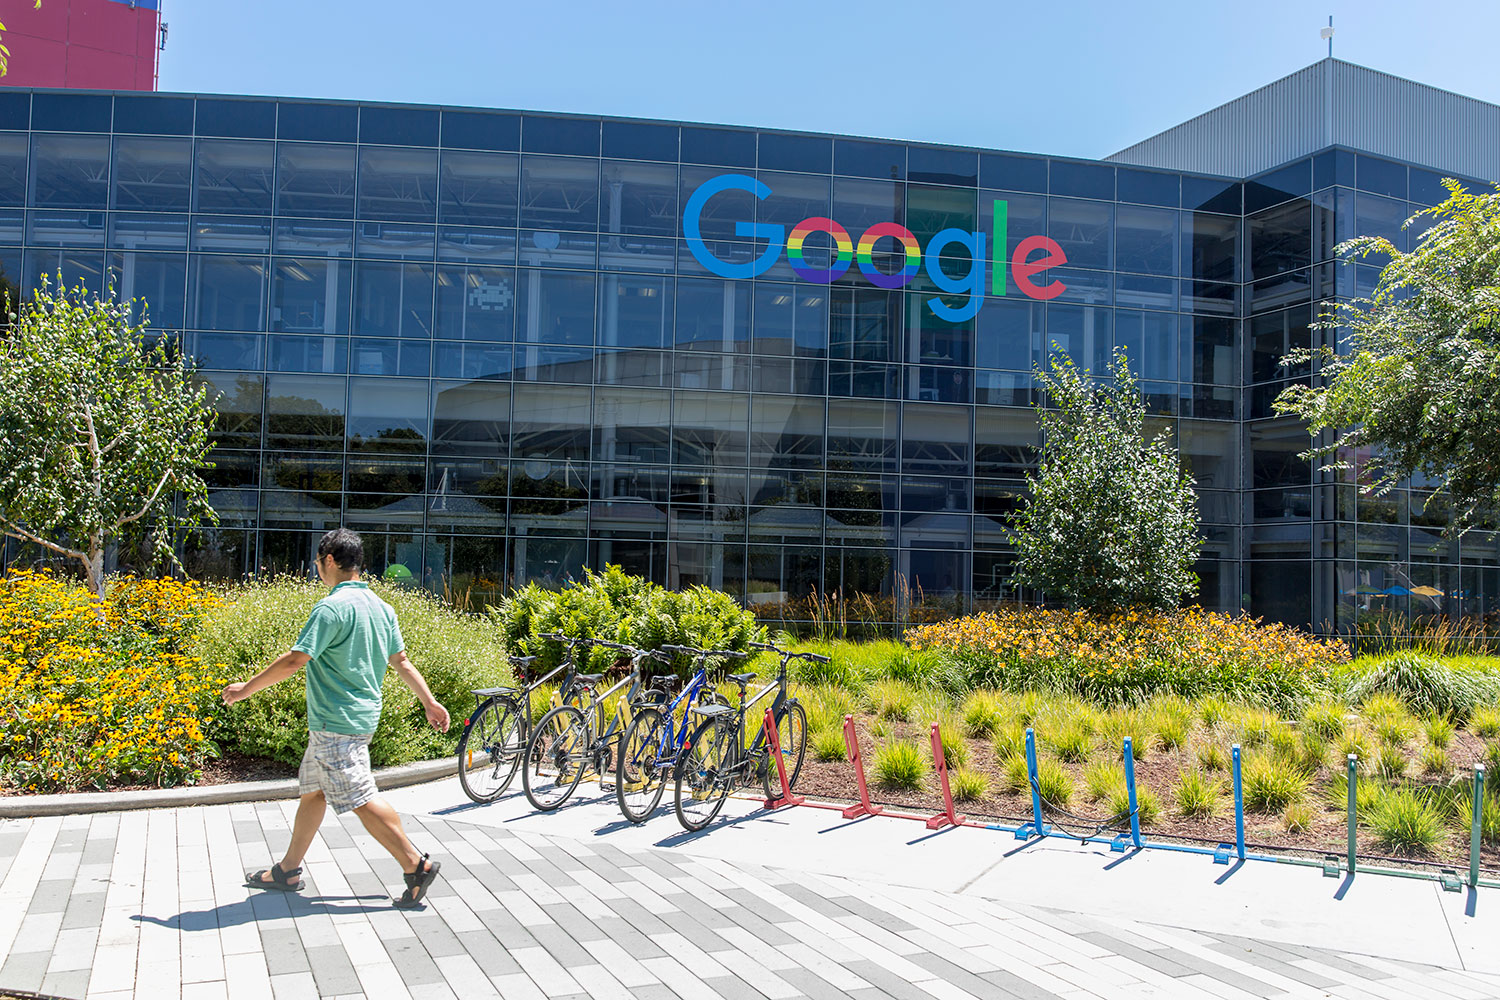 Google's headquarters neighborhood, above, is expanding after it bought an 11-building office park nearby in Mountain View, California.